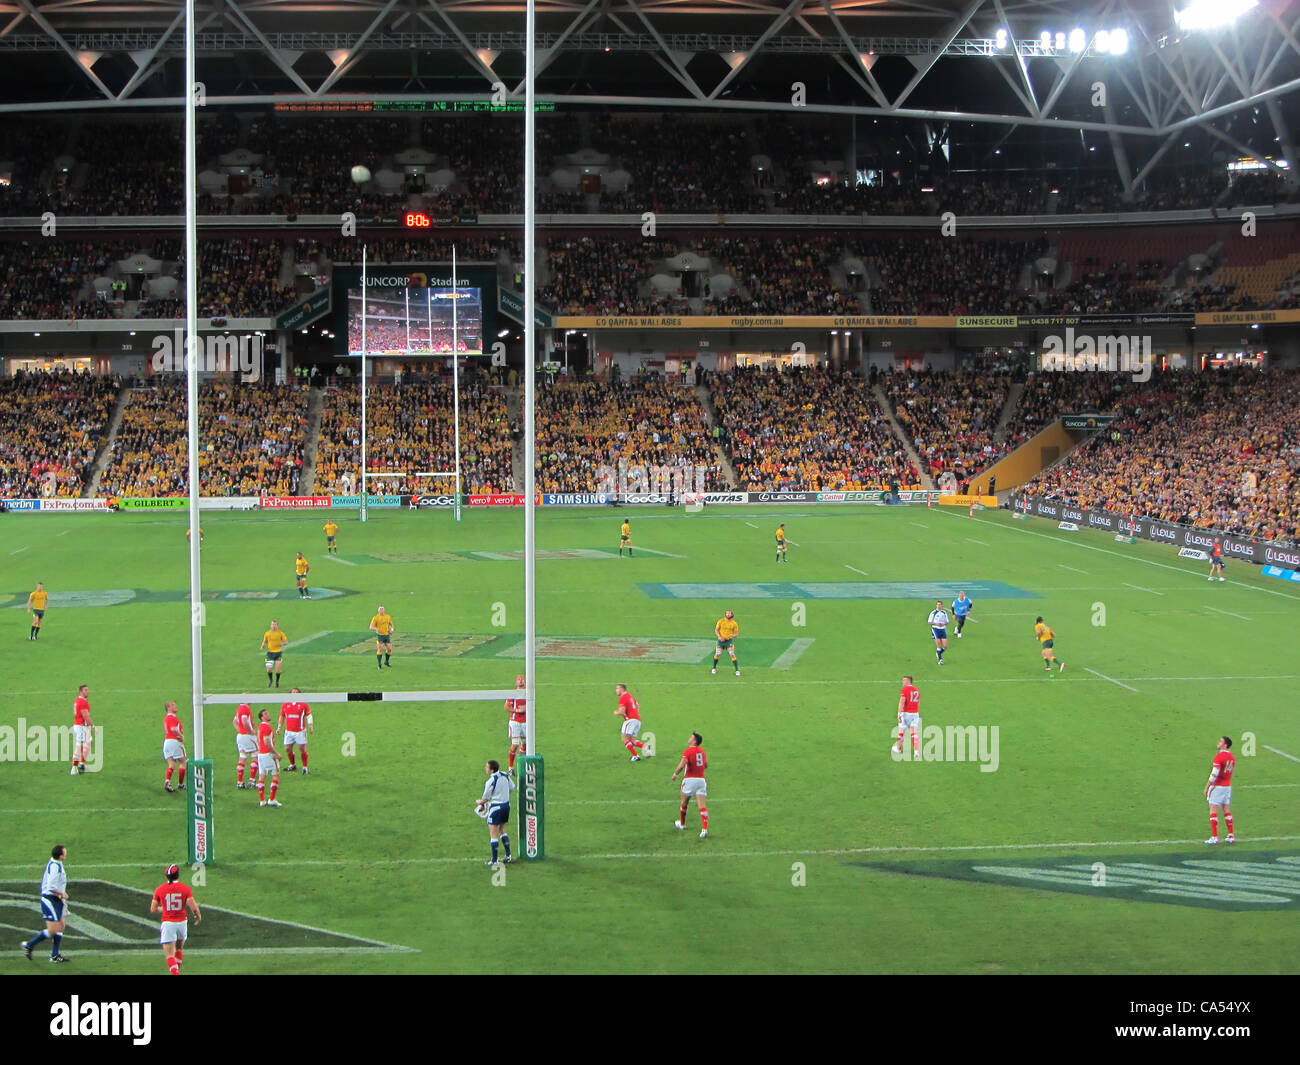 Australia vs Wales Brisbane 2012 Queensland Australia at the Suncorp Stadium Rugby Union - Stock Image